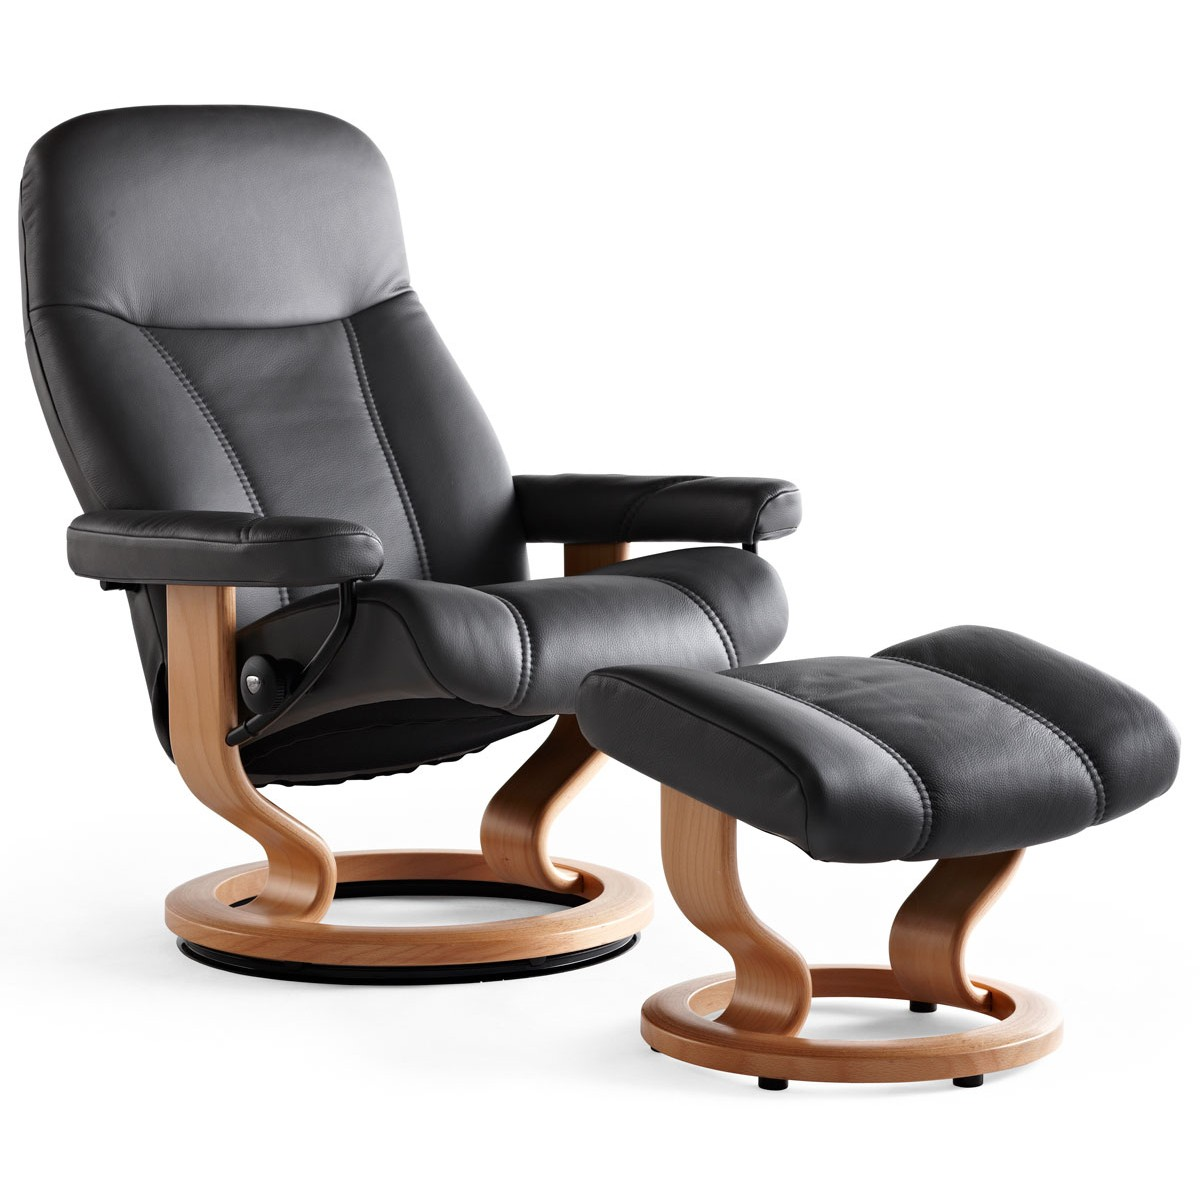 Divani Relaxer Chair Recliners Seating Living Furniture Danco Modern Just N Of